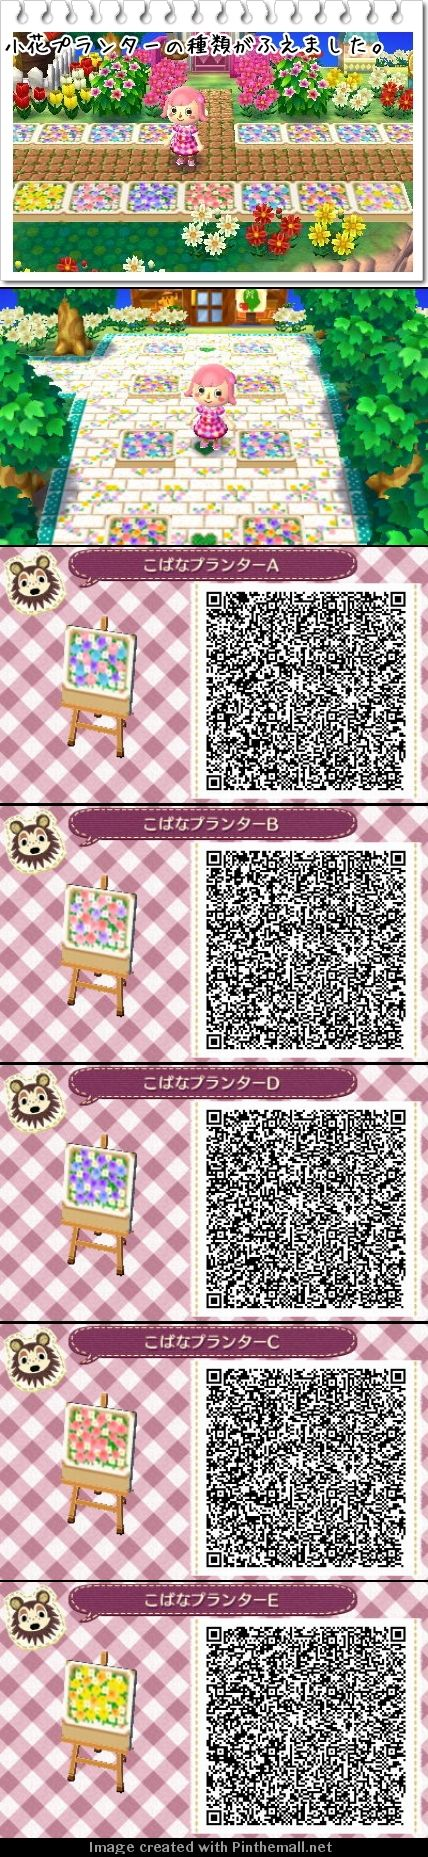 New Leaf Cute Acnl Path Qr Codes 428x1857 Wallpaper Teahub Io